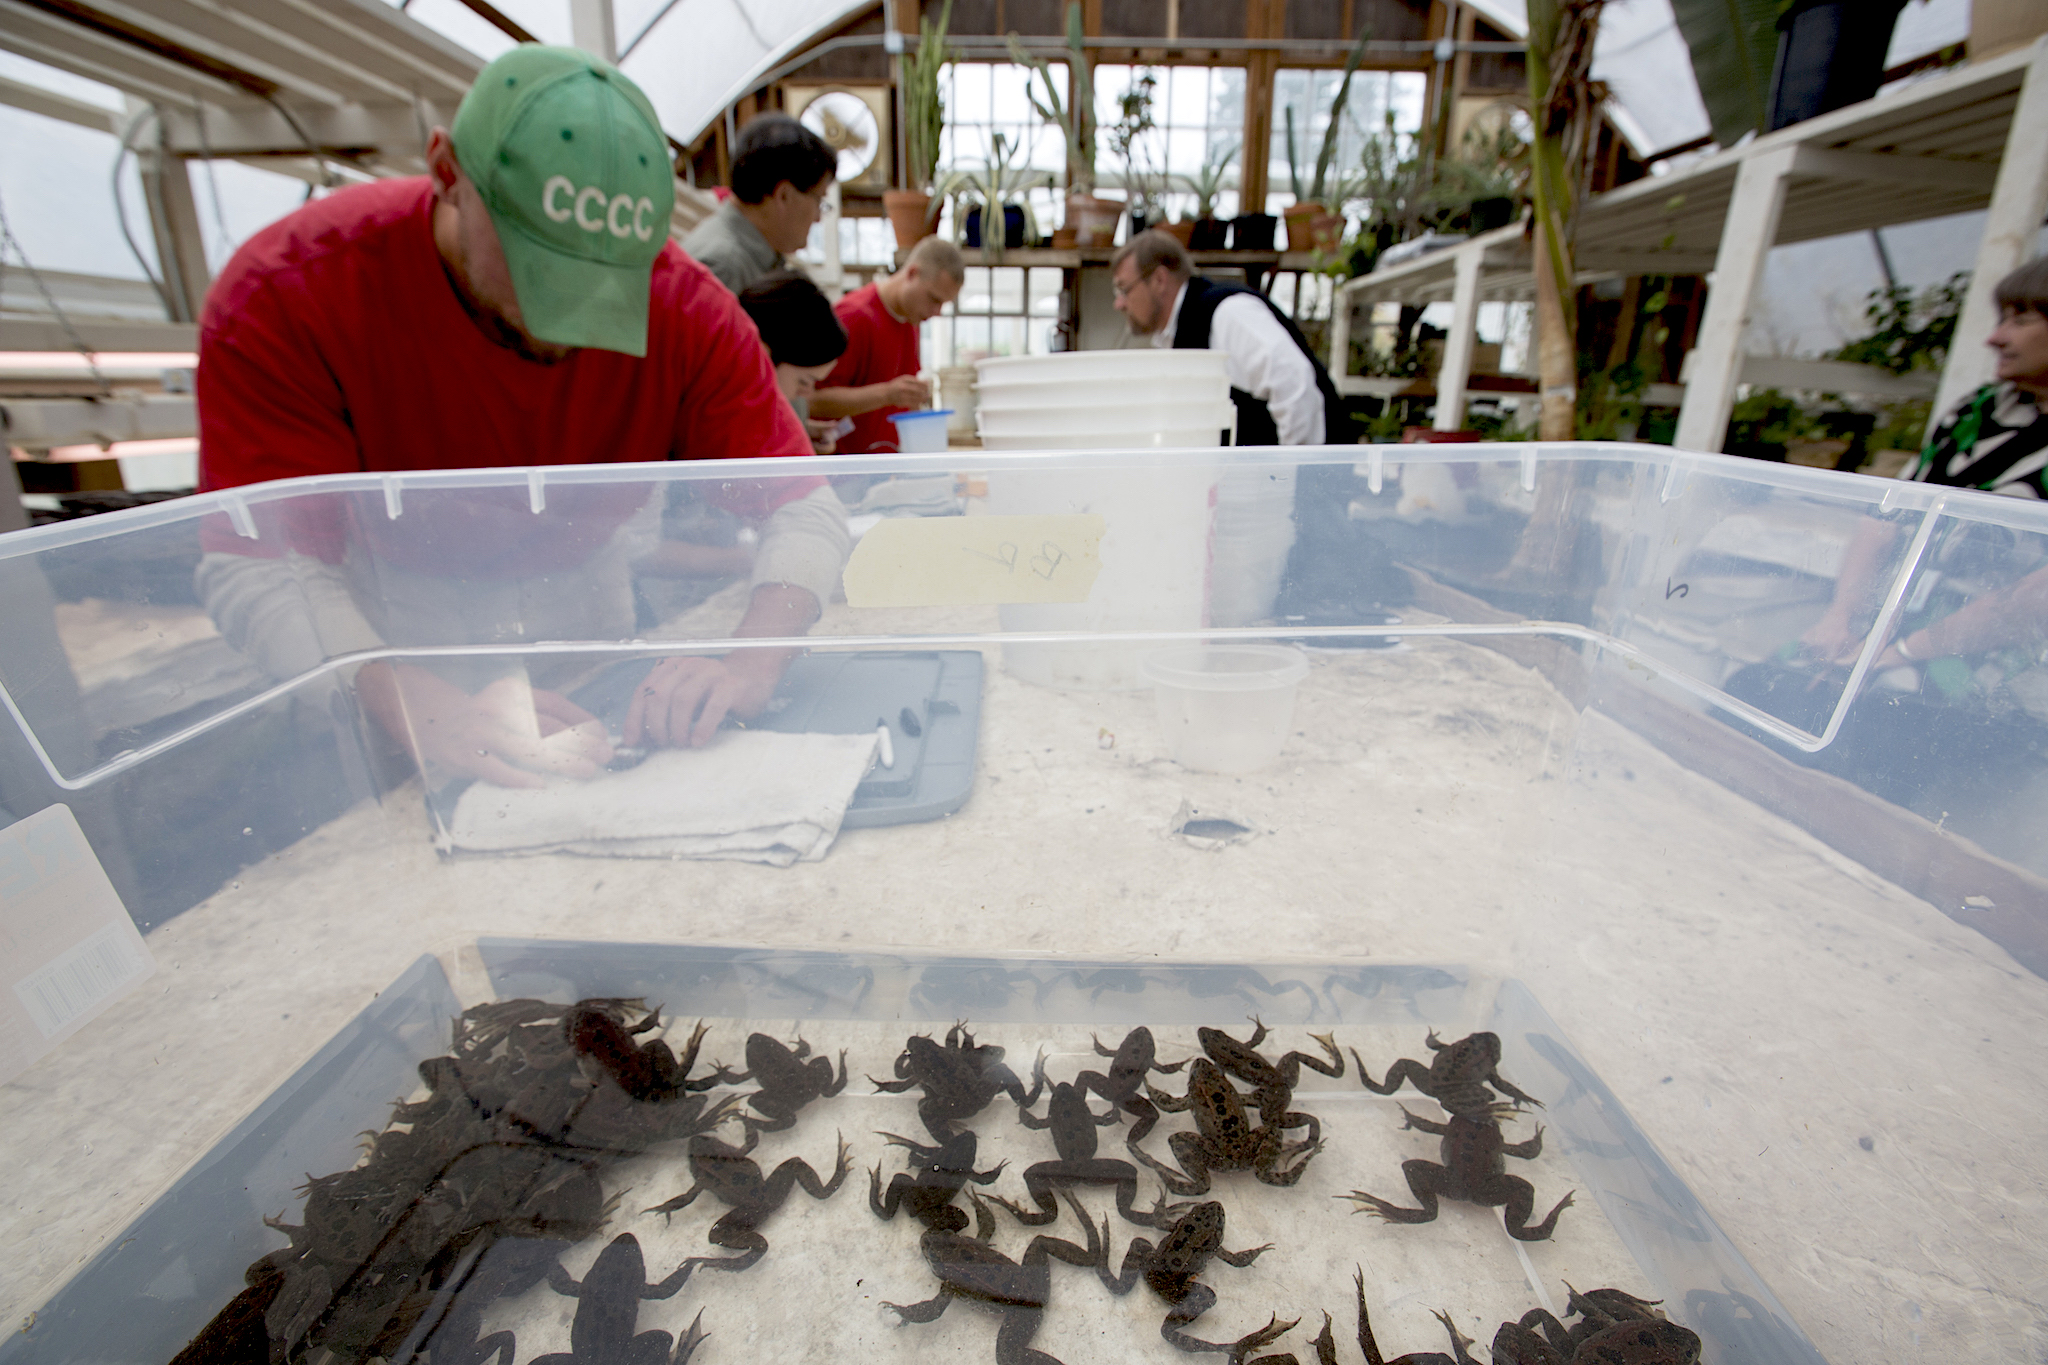 The frog-rearing program operated in a greenhouse on the prison grounds from 2009 to 2015. During this time the inmates raised and released 879 frogs to wetland sites in the Pacific Northwest. The program is currently on hold while scientists assess the breeding success of reared frogs in the wild. Photograph by Cyril Ruoso.